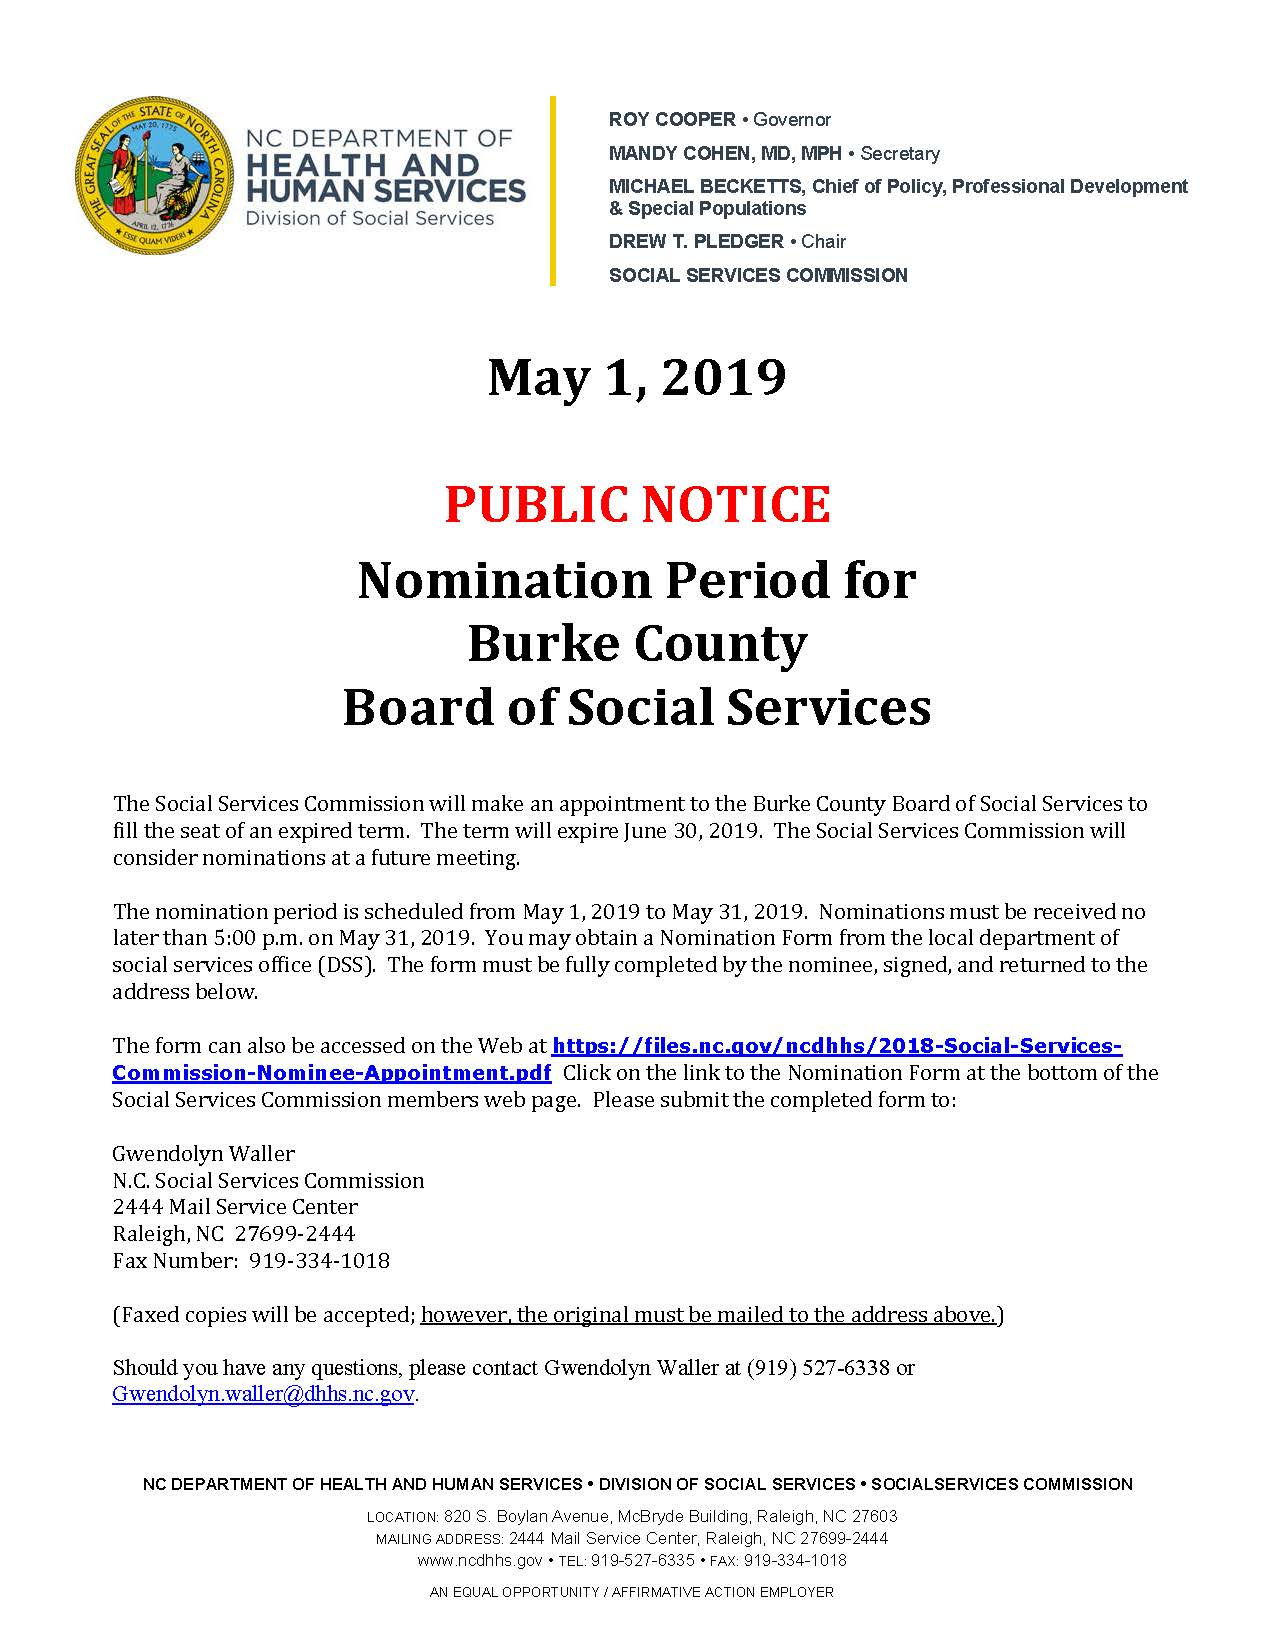 Burke County DSS Board Vacancy